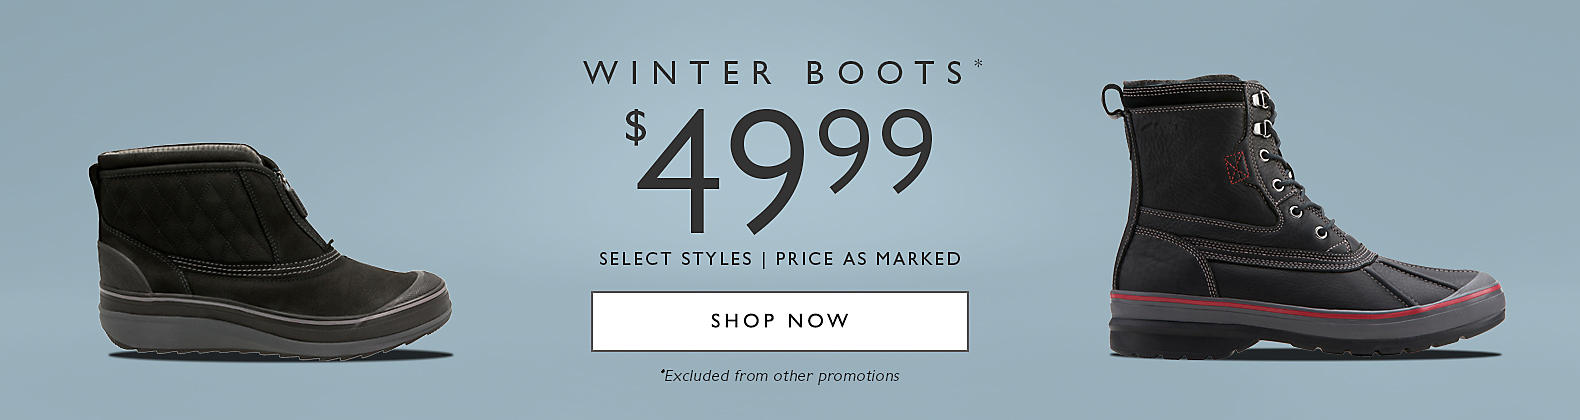 Winter Boots $49.99